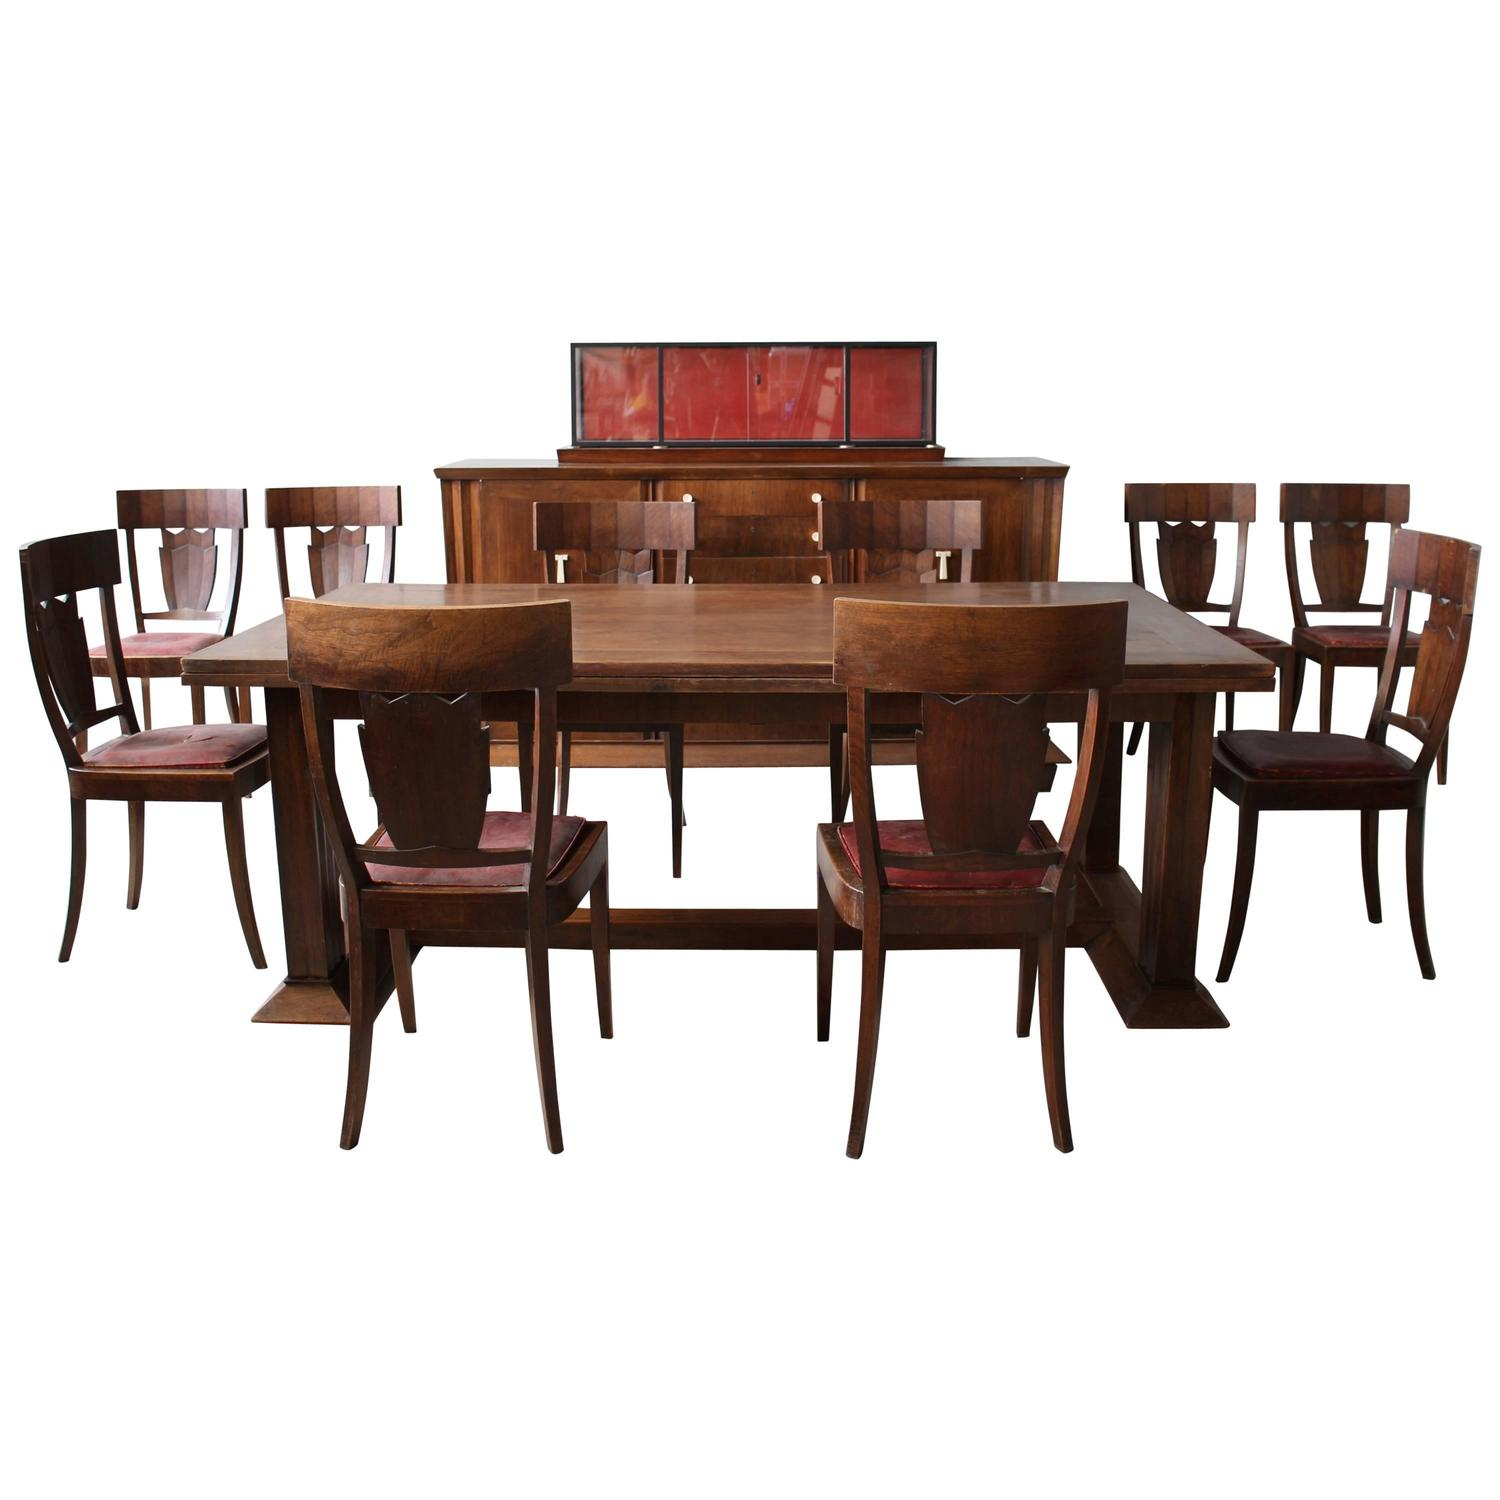 Rare French Art Deco Walnut Dining Room Set By Jean Charles Moreux